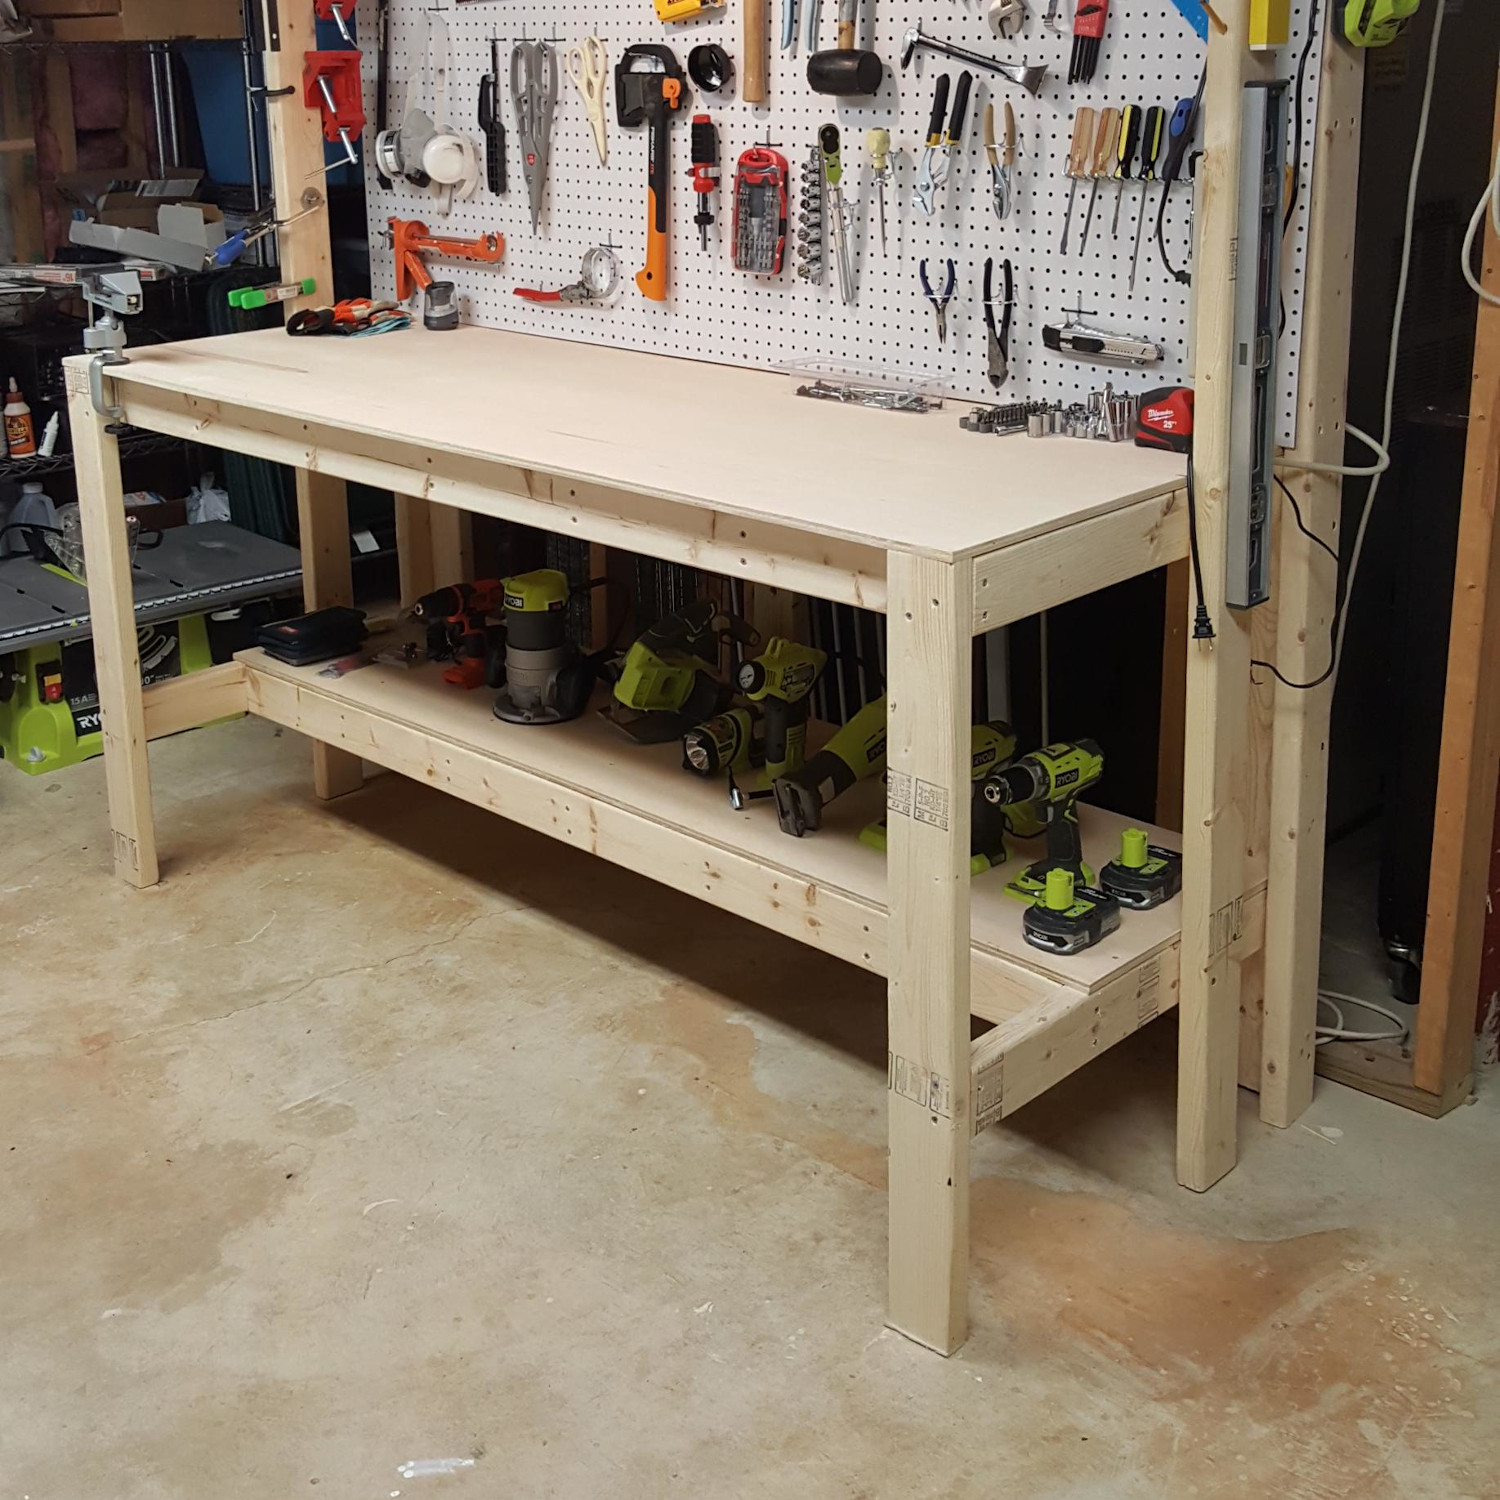 What is the best size for a garage workbench?